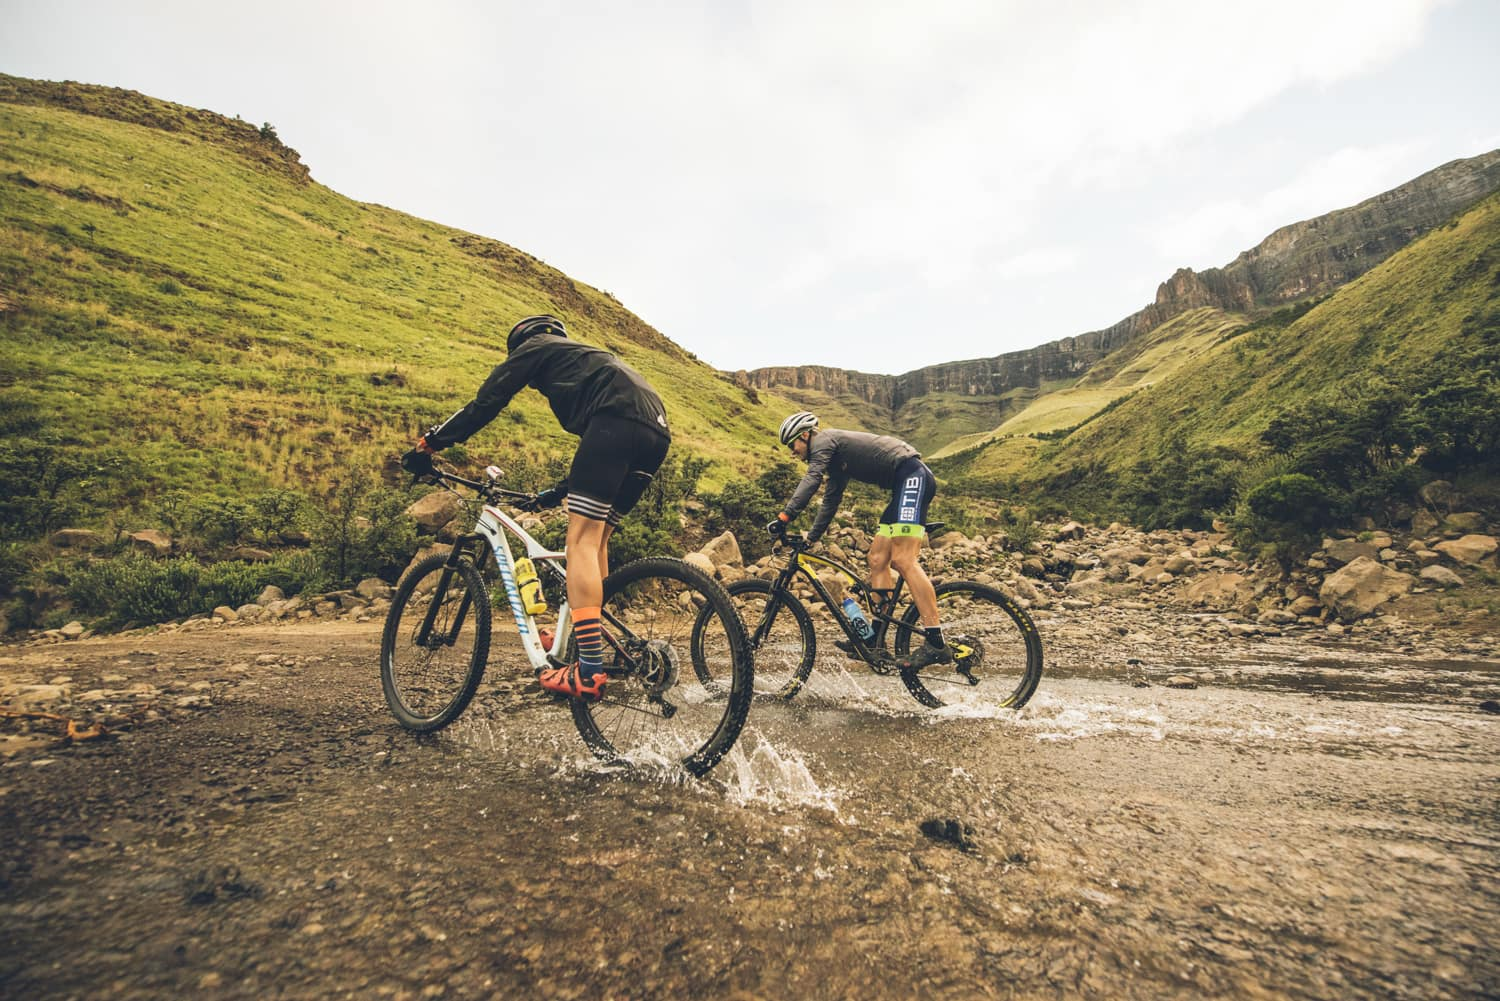 sani-pass-desmond-louw-bicycling-magazine-wowrides-0118